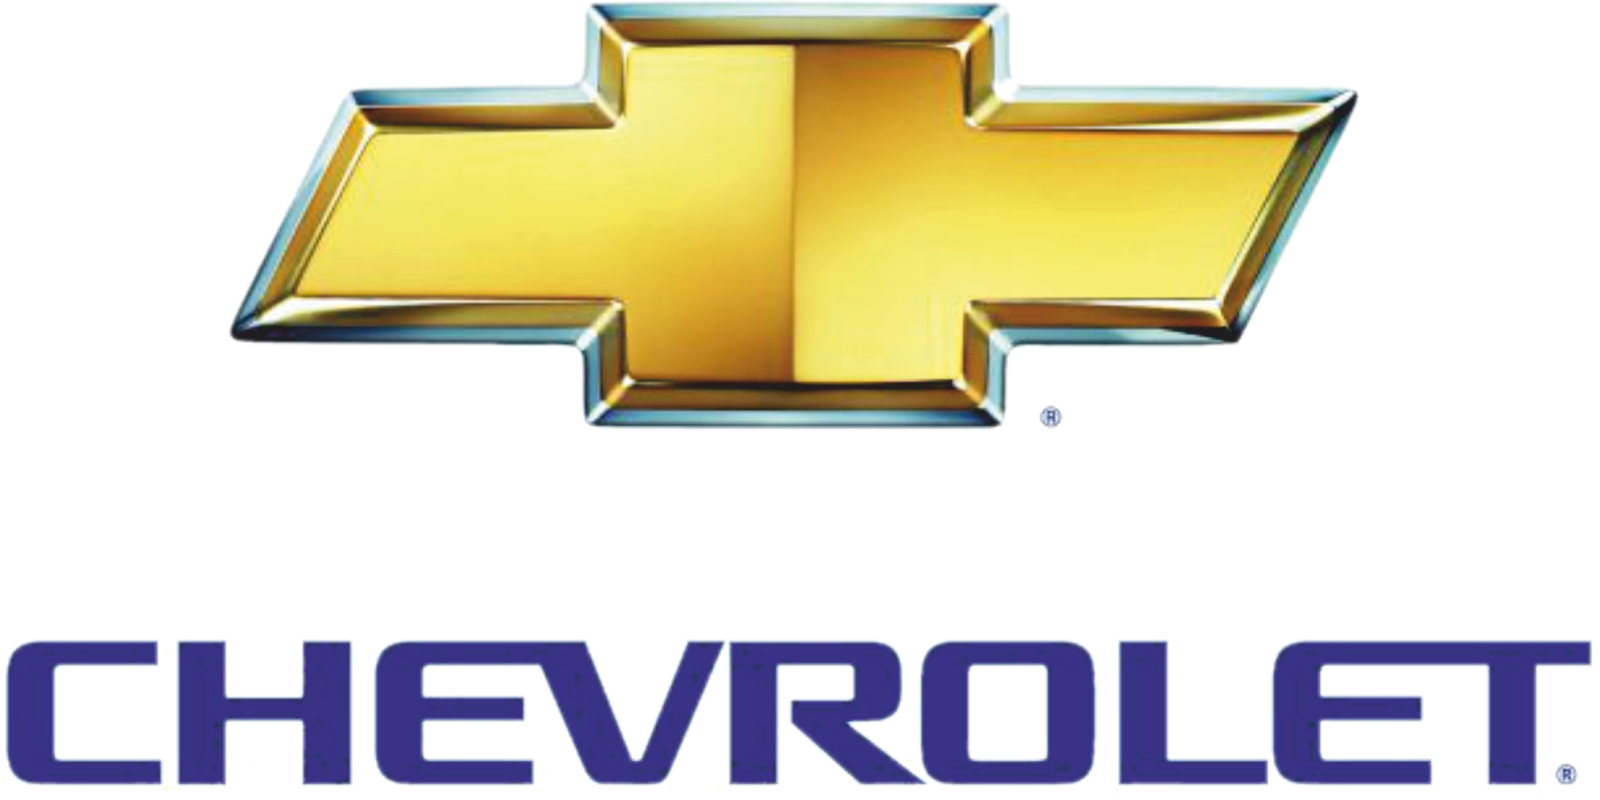 Chevy bowtie logo png. Image for chevrolet vector